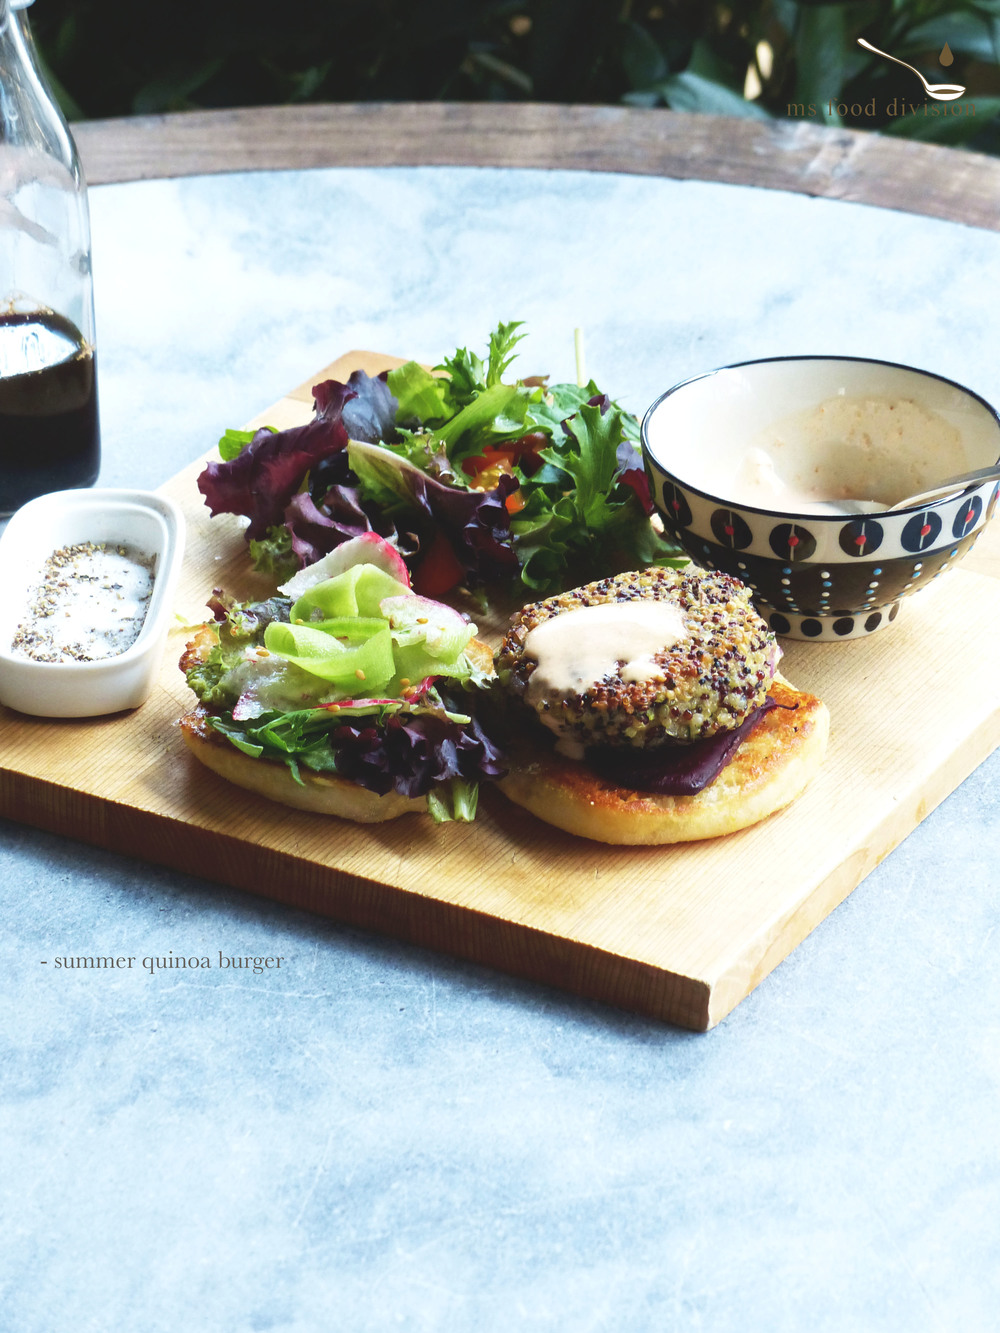 This light burger is perfect for the steamy hot summer.